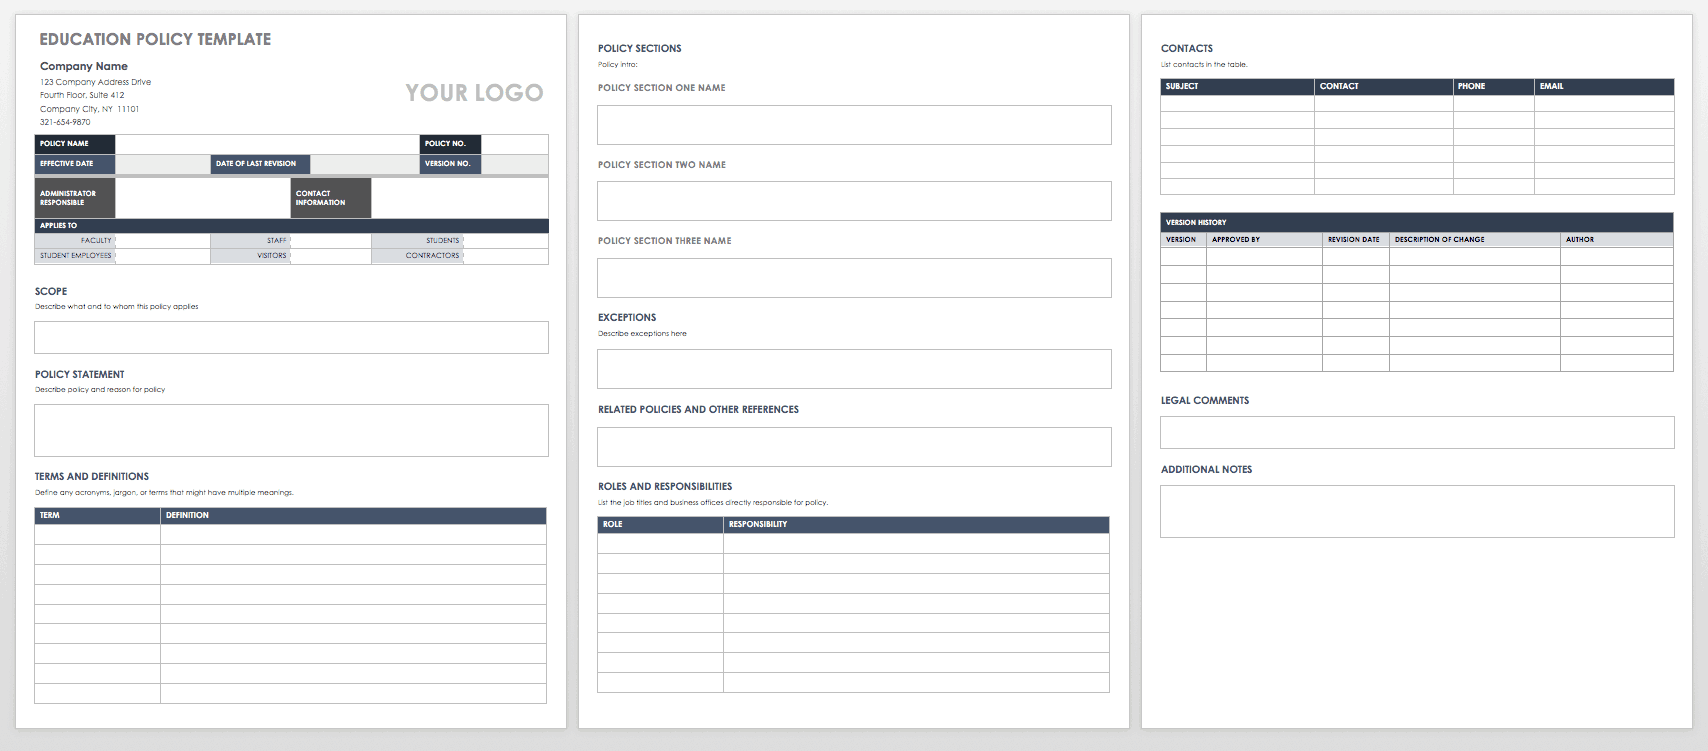 Policy And Procedure Manual Template Free from www.smartsheet.com